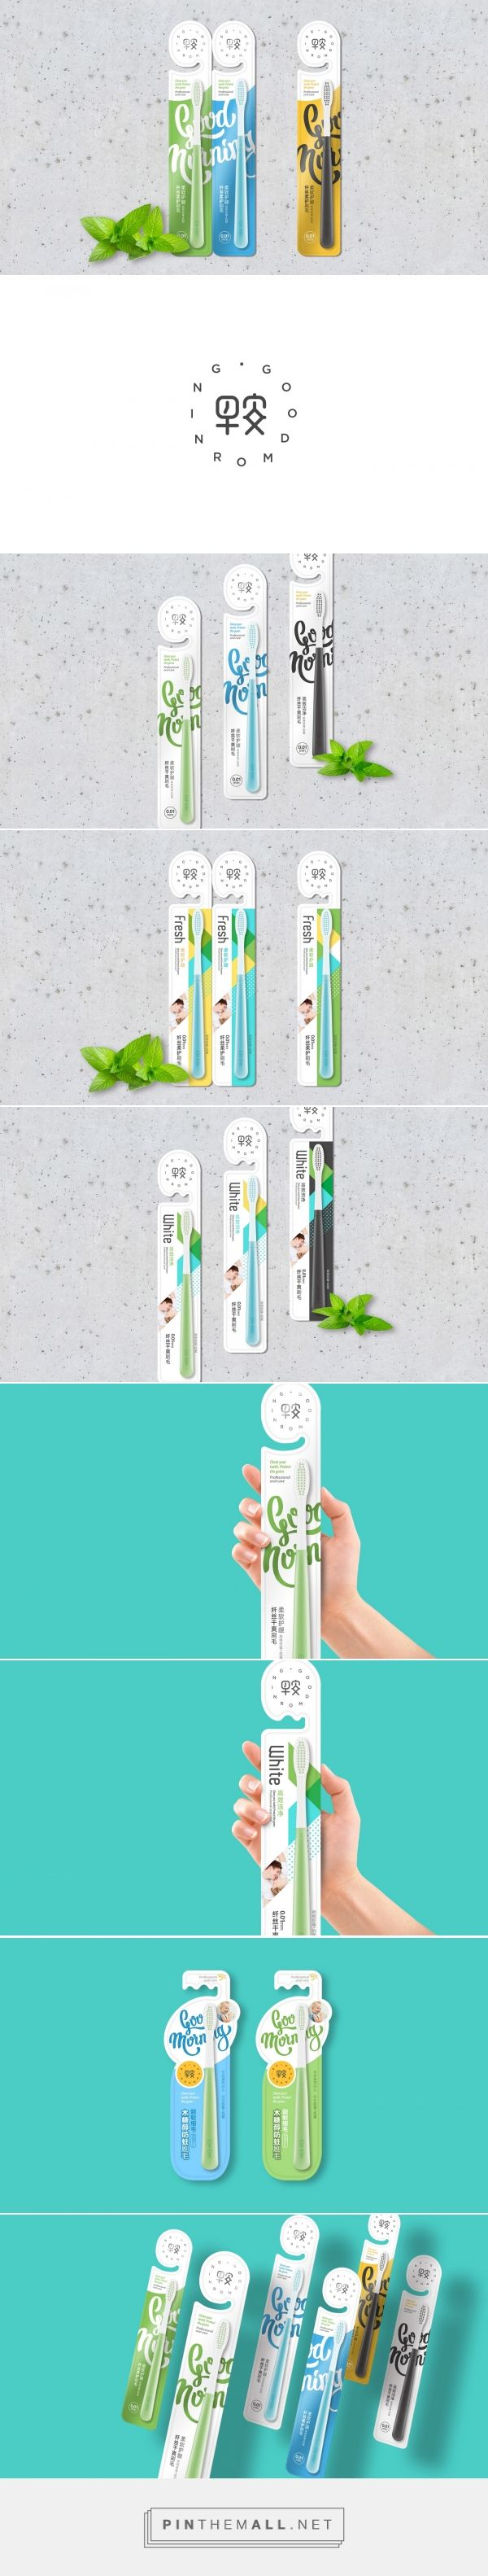 Good Morning toothbrushes by Dy. W. Source: Bechance. Pin curated by #SFields99 #packaging #design #inspiration #ideas #branding #beauty #products